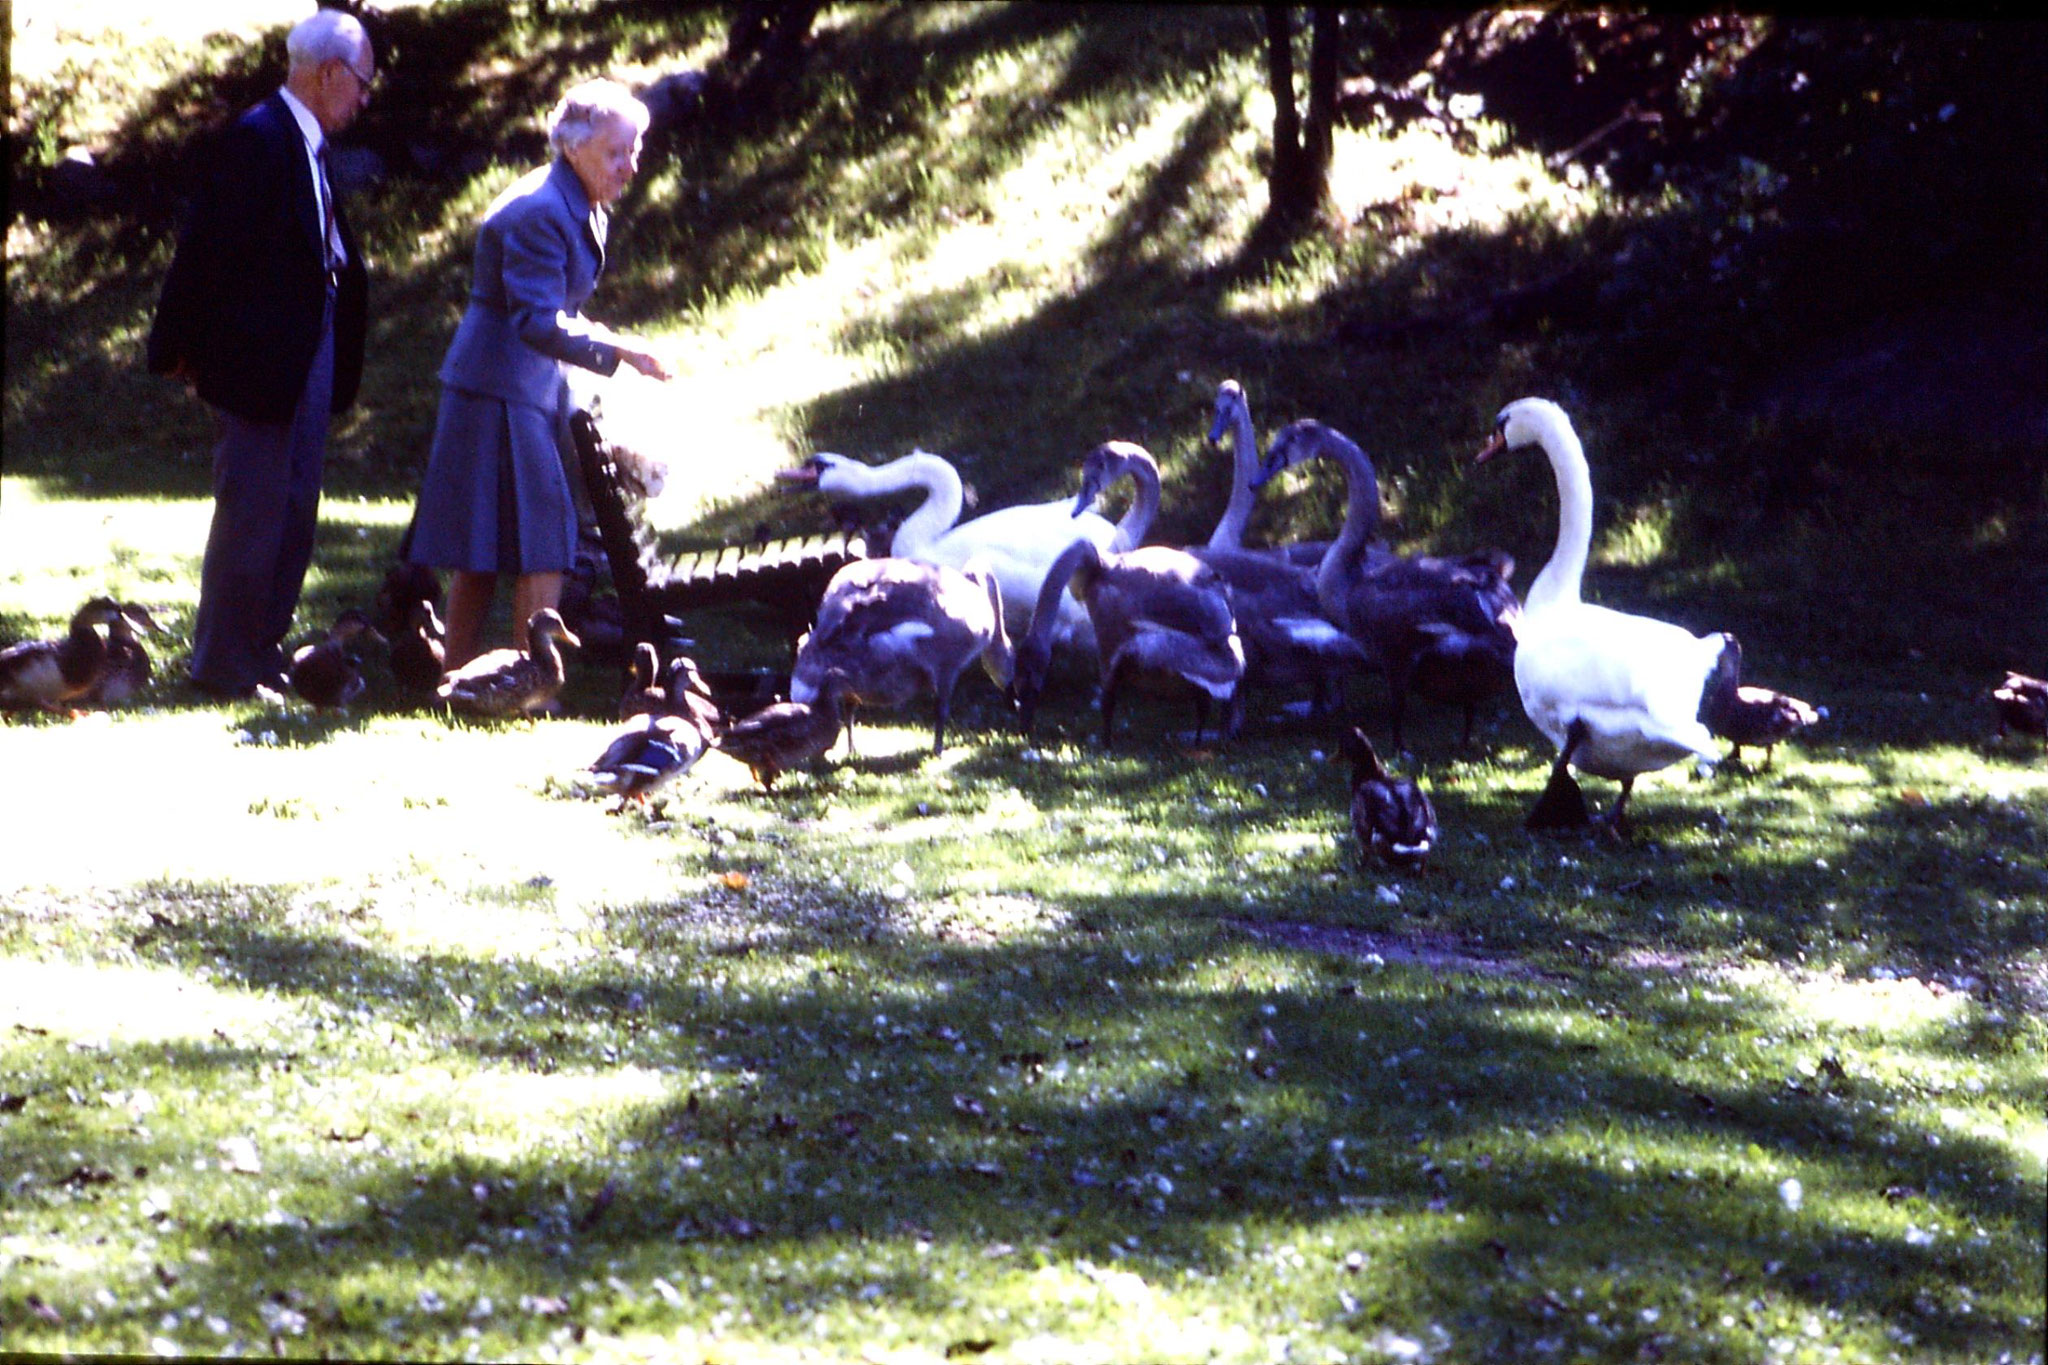 7/9/1988: 30: woman feeding swans